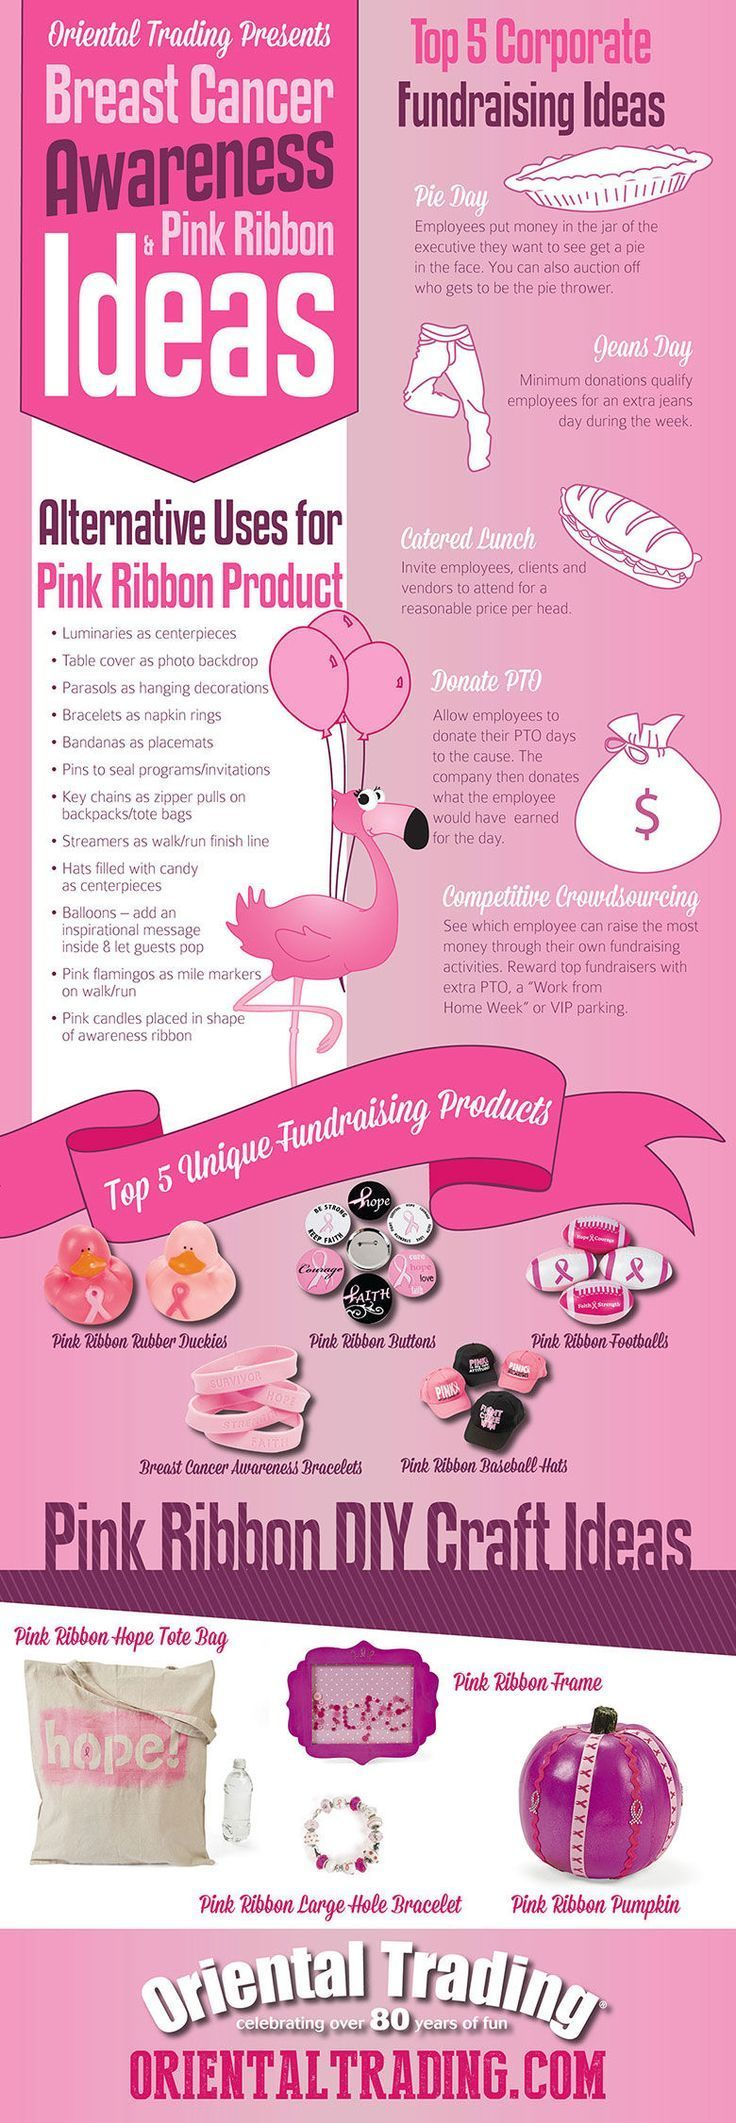 Breast Cancer Awareness Infographic by http://OrientalTrading.com